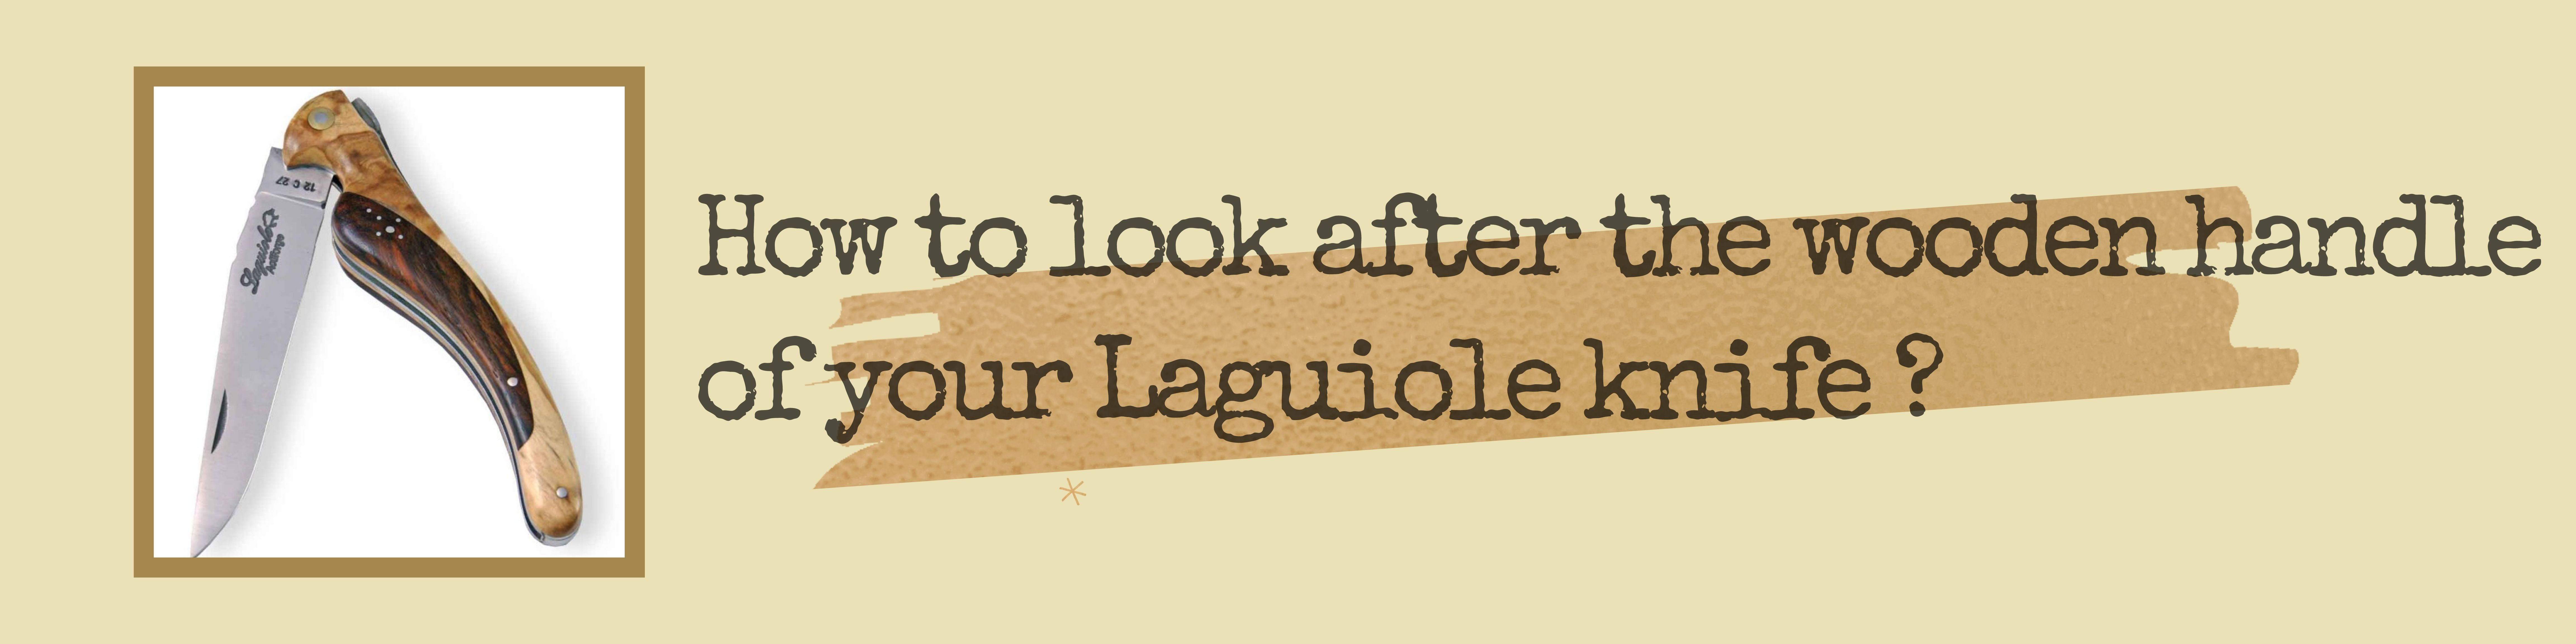 How to properly look after your Laguiole knife